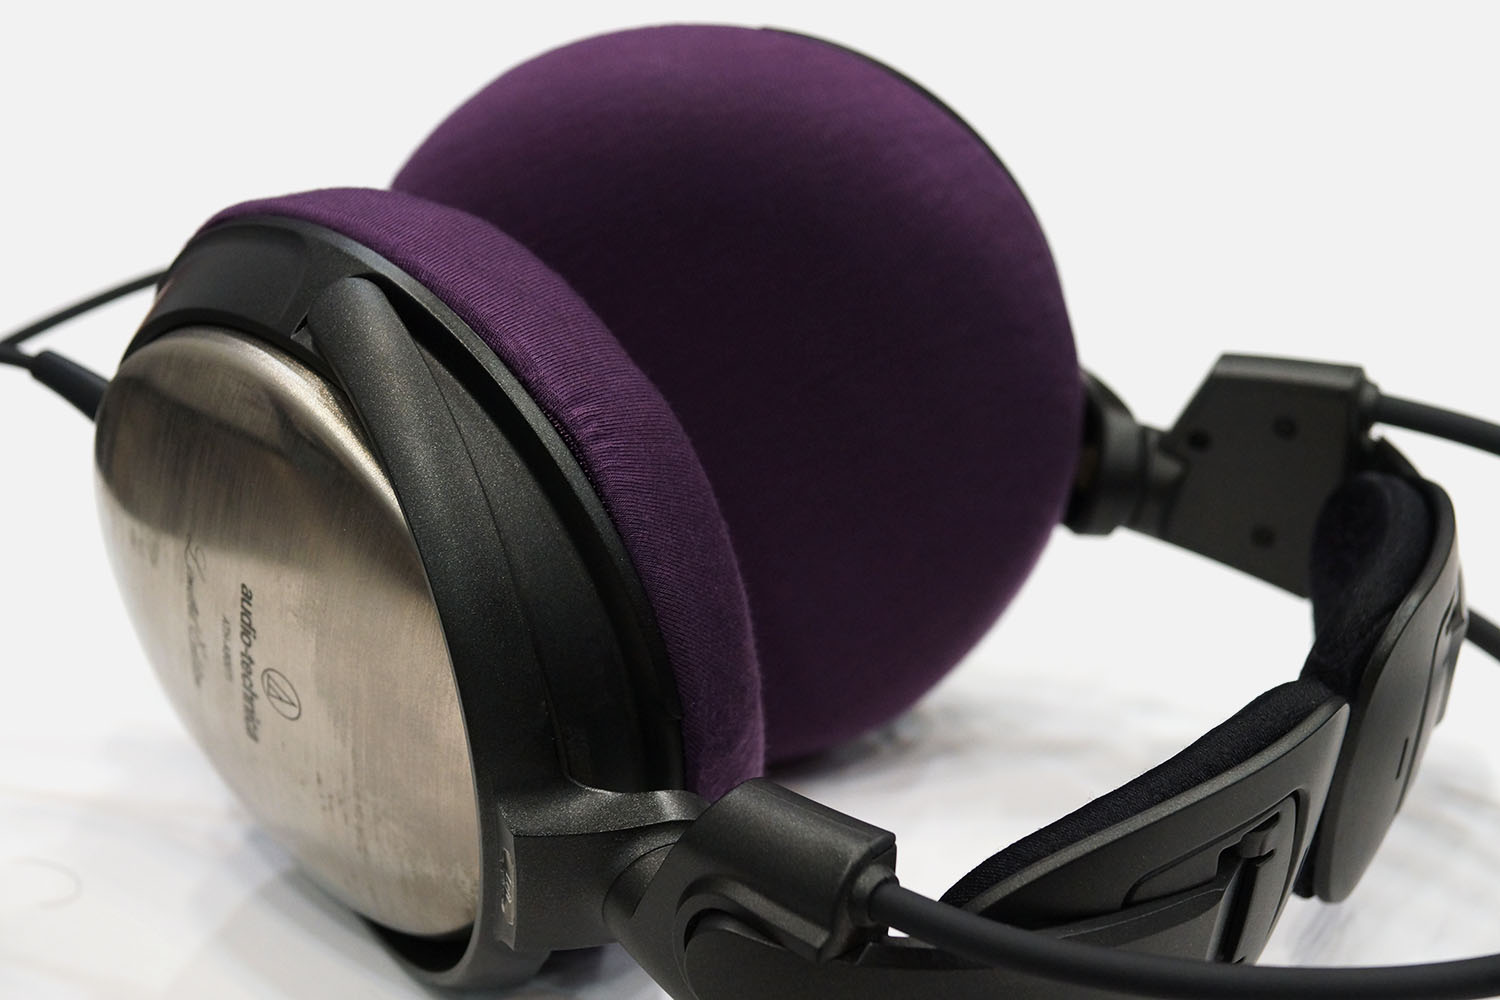 audio-technica ATH-A900Ti ear pads compatible with mimimamo